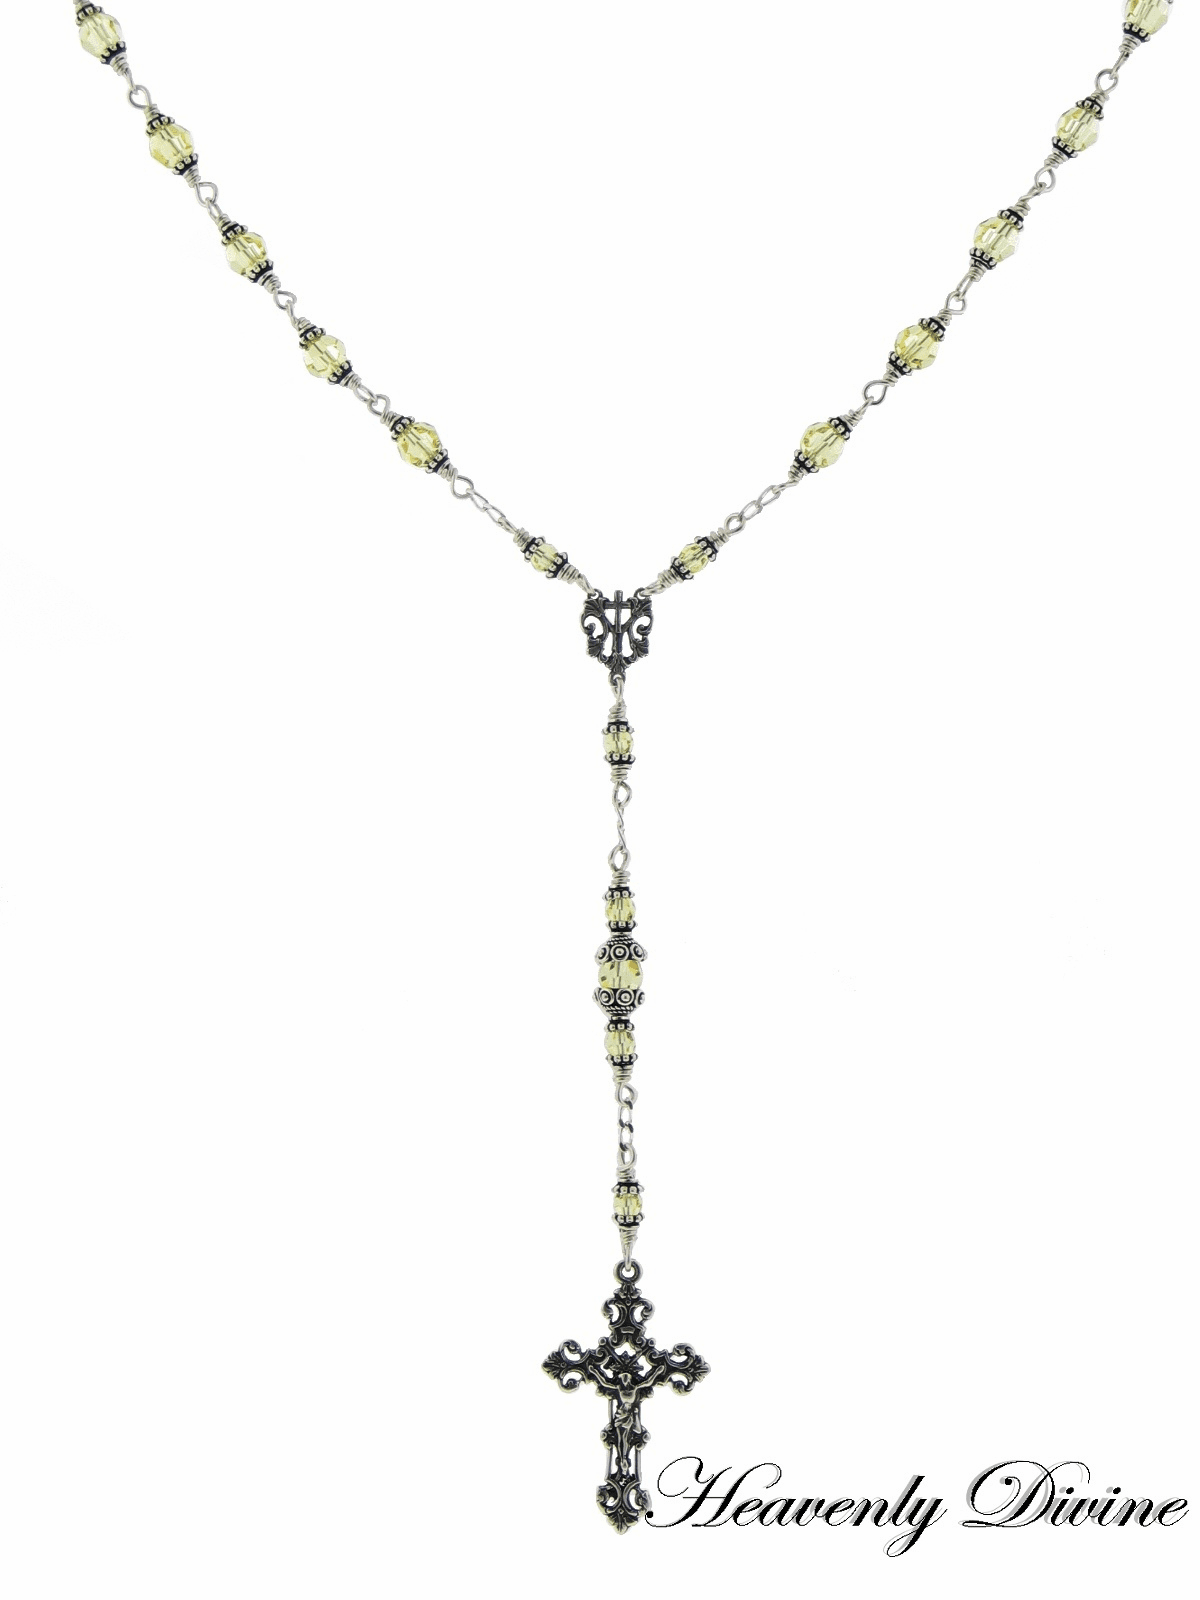 Sterling Silver Yellow Jonquil Swarovski Rosary Necklace by Heavenly Divine